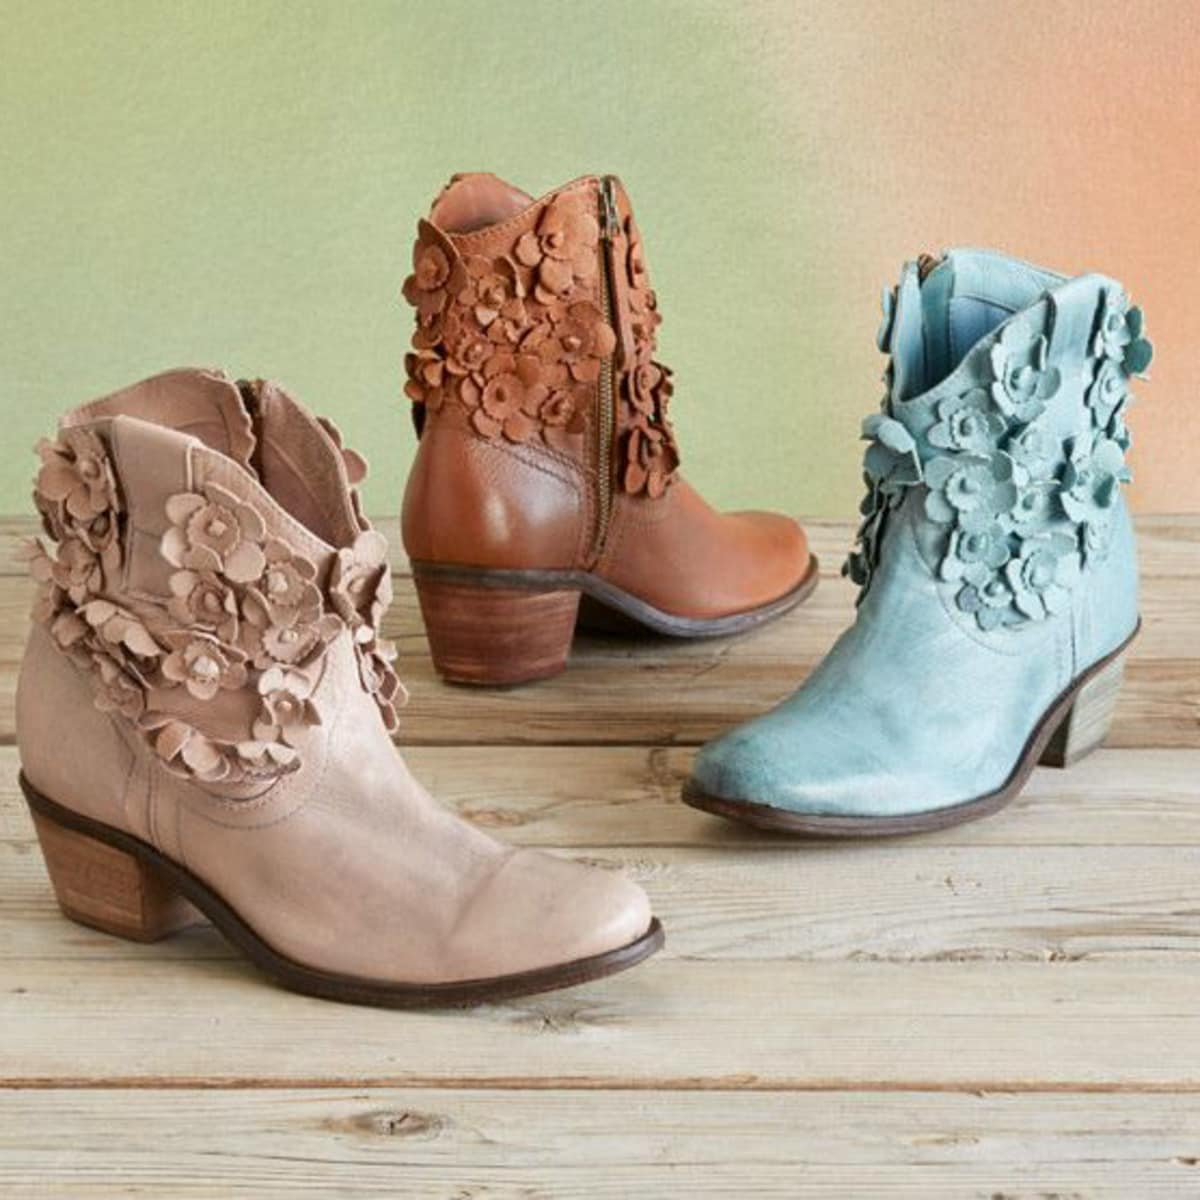 Boots from Cowbabes